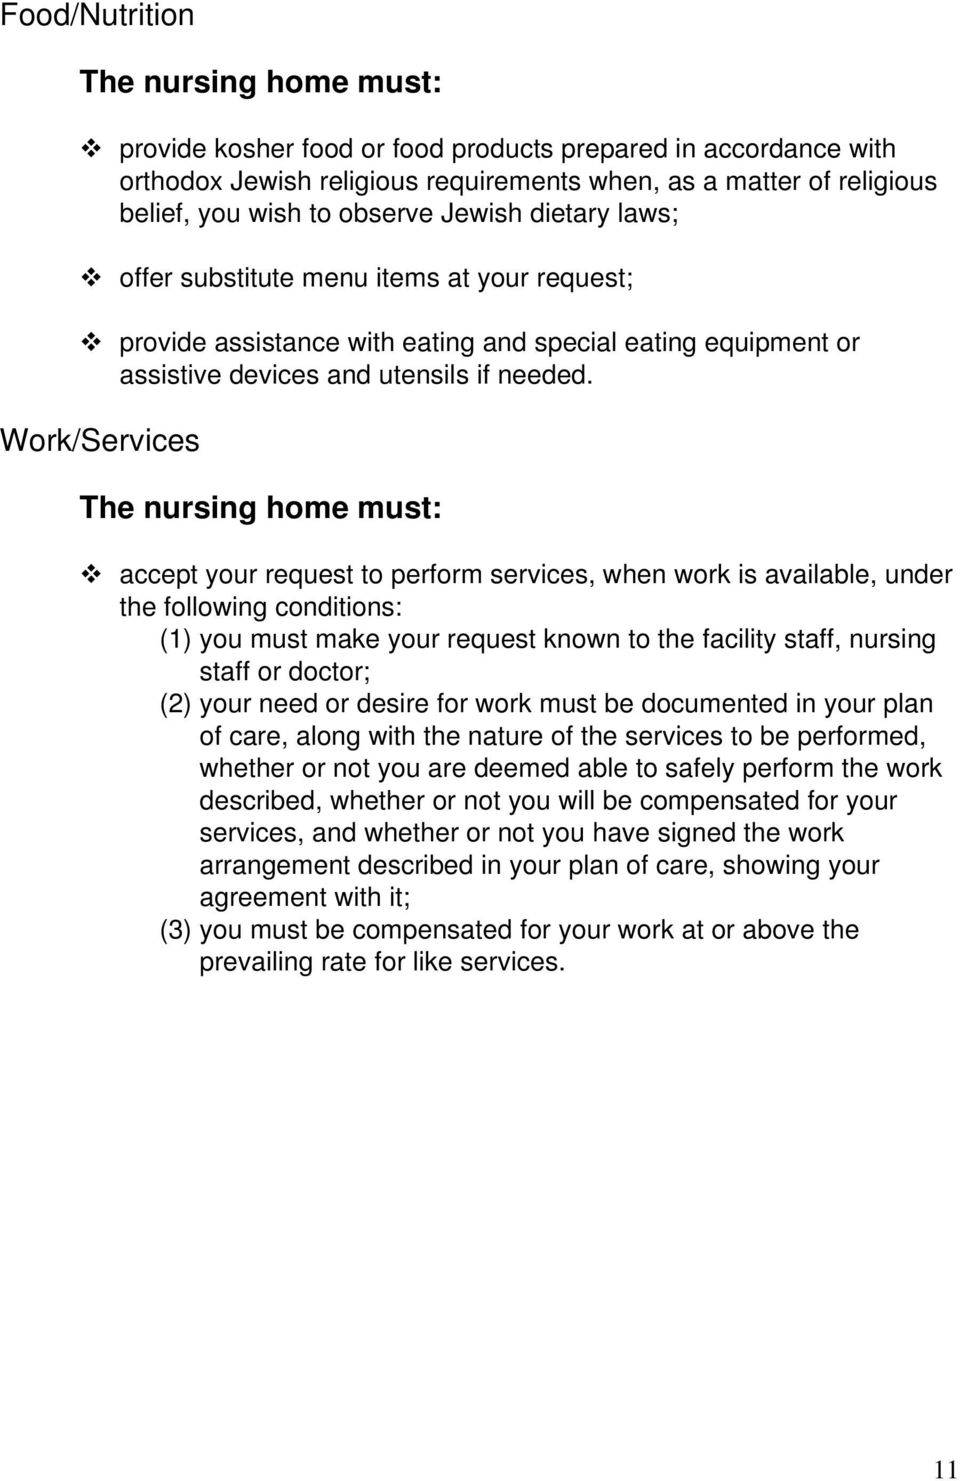 Work/Services The nursing home must: accept your request to perform services, when work is available, under the following conditions: (1) you must make your request known to the facility staff,